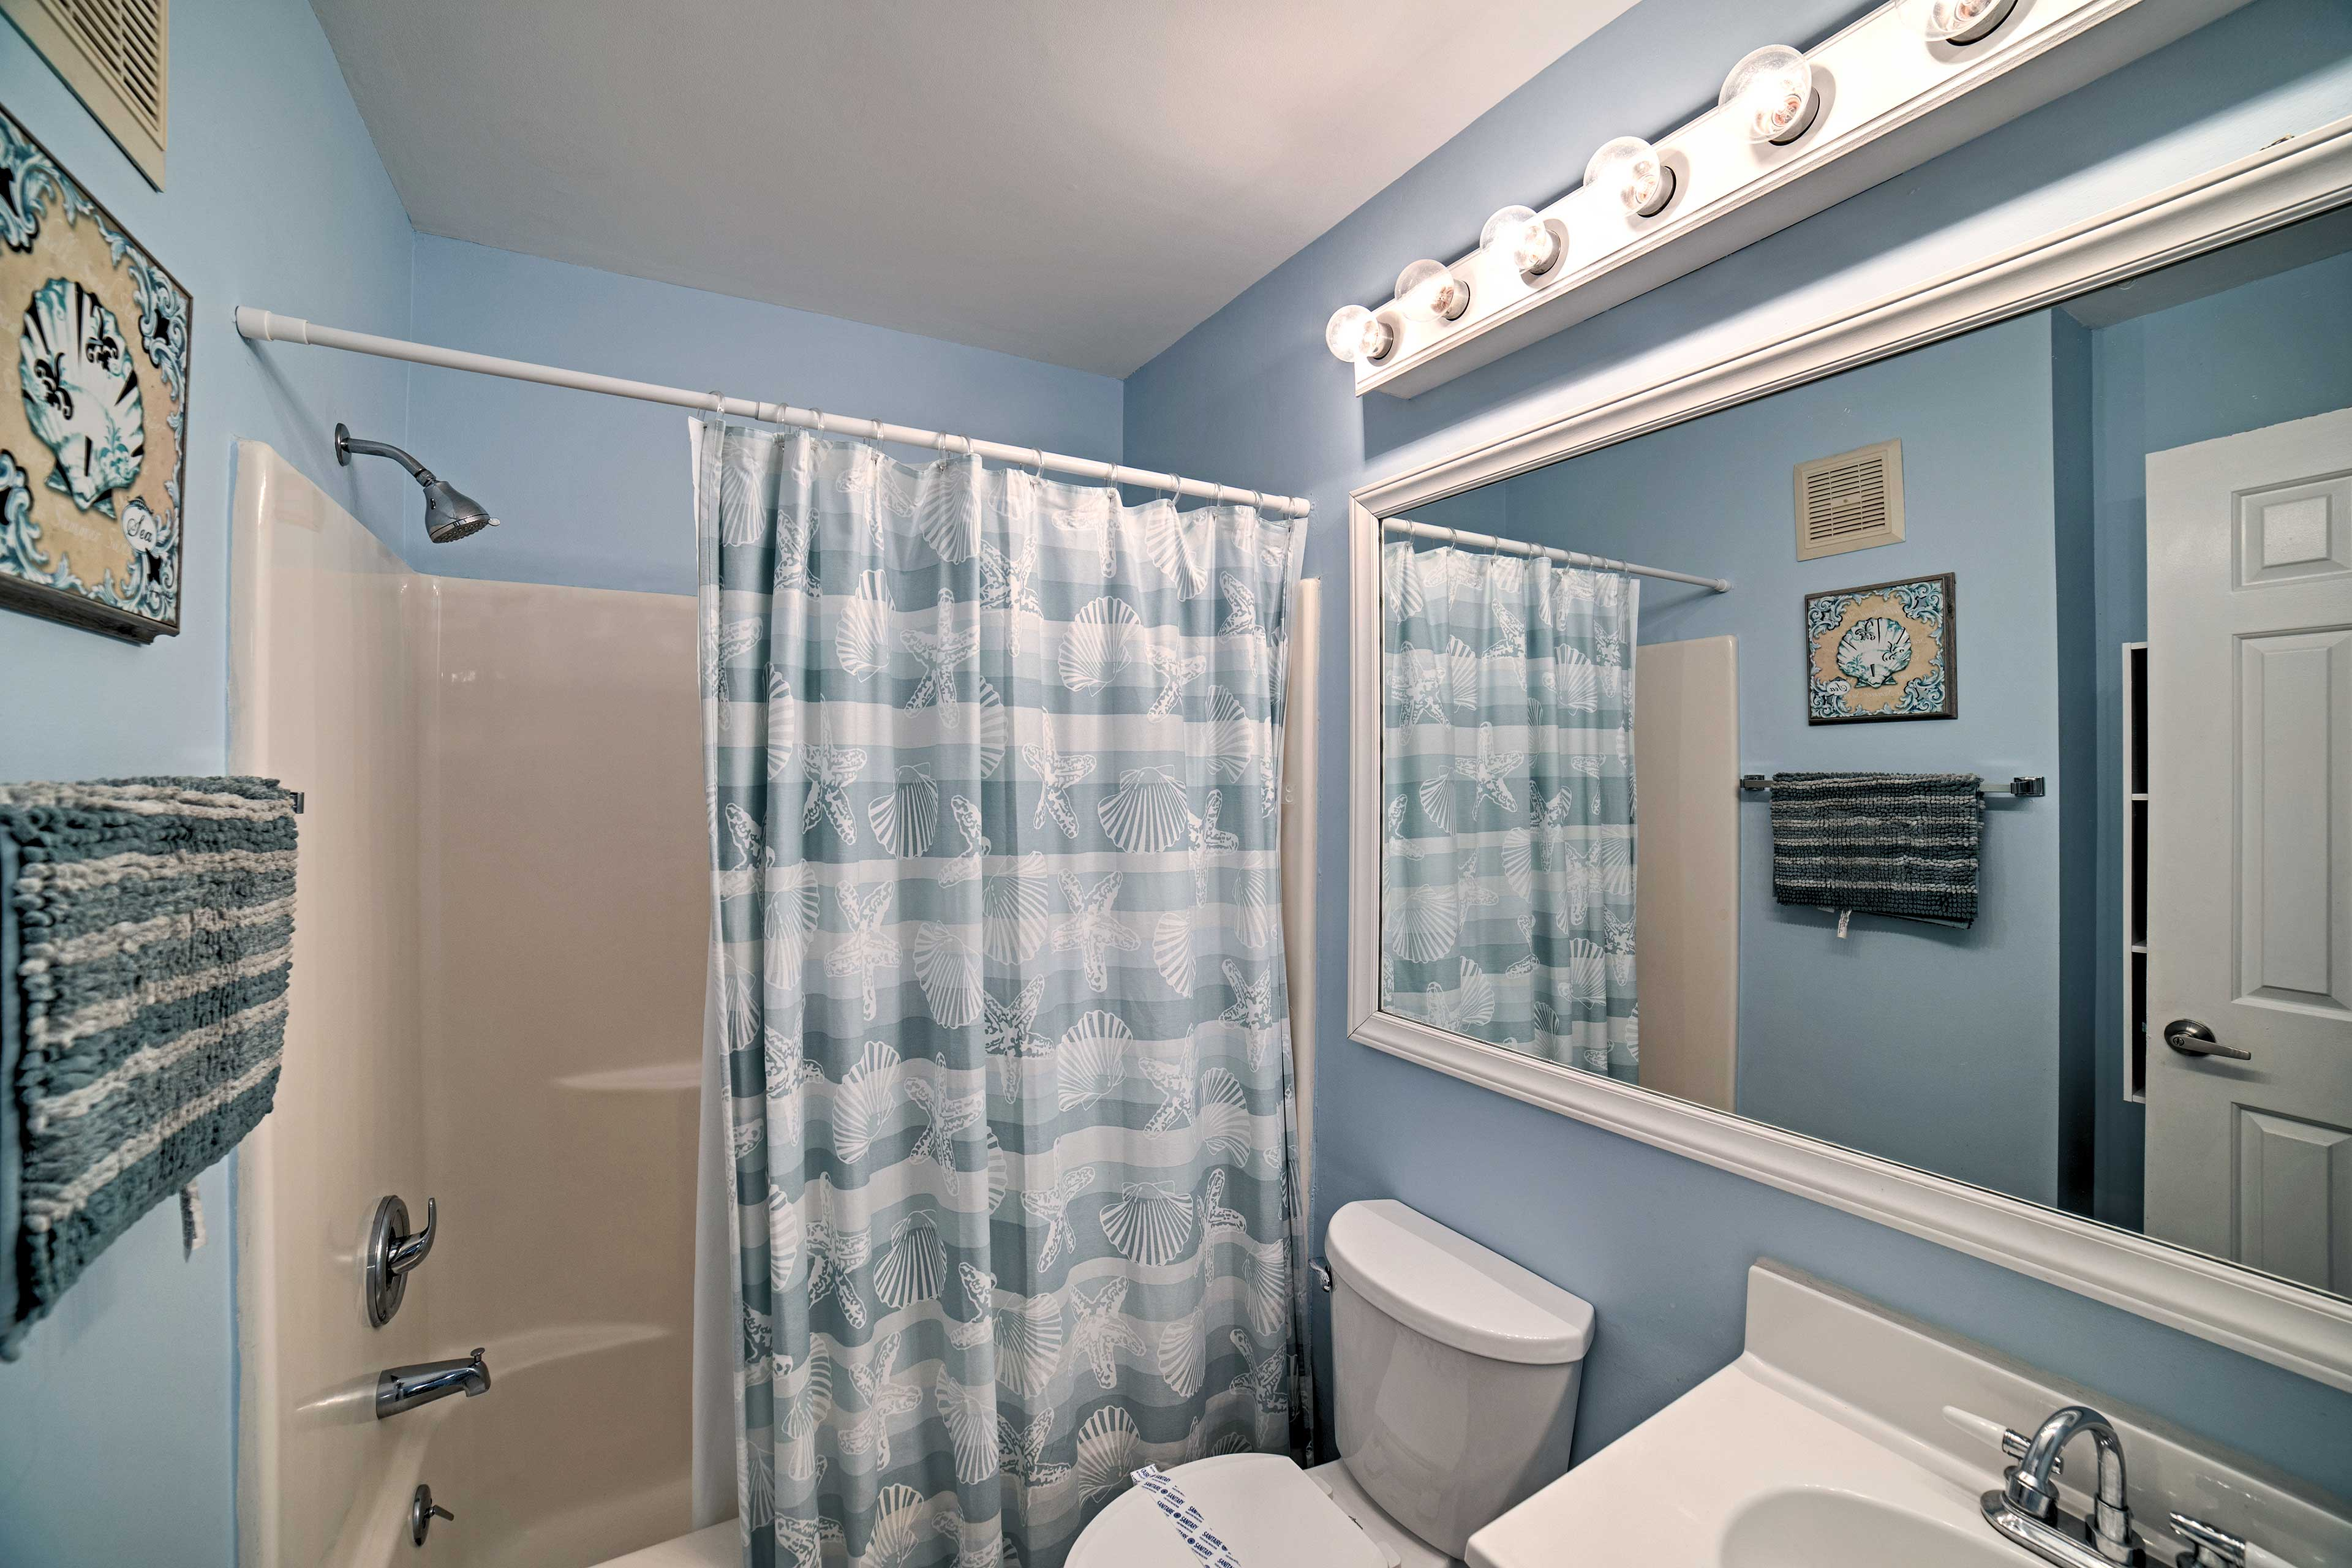 Both of the full bathrooms come stocked with fresh towels.